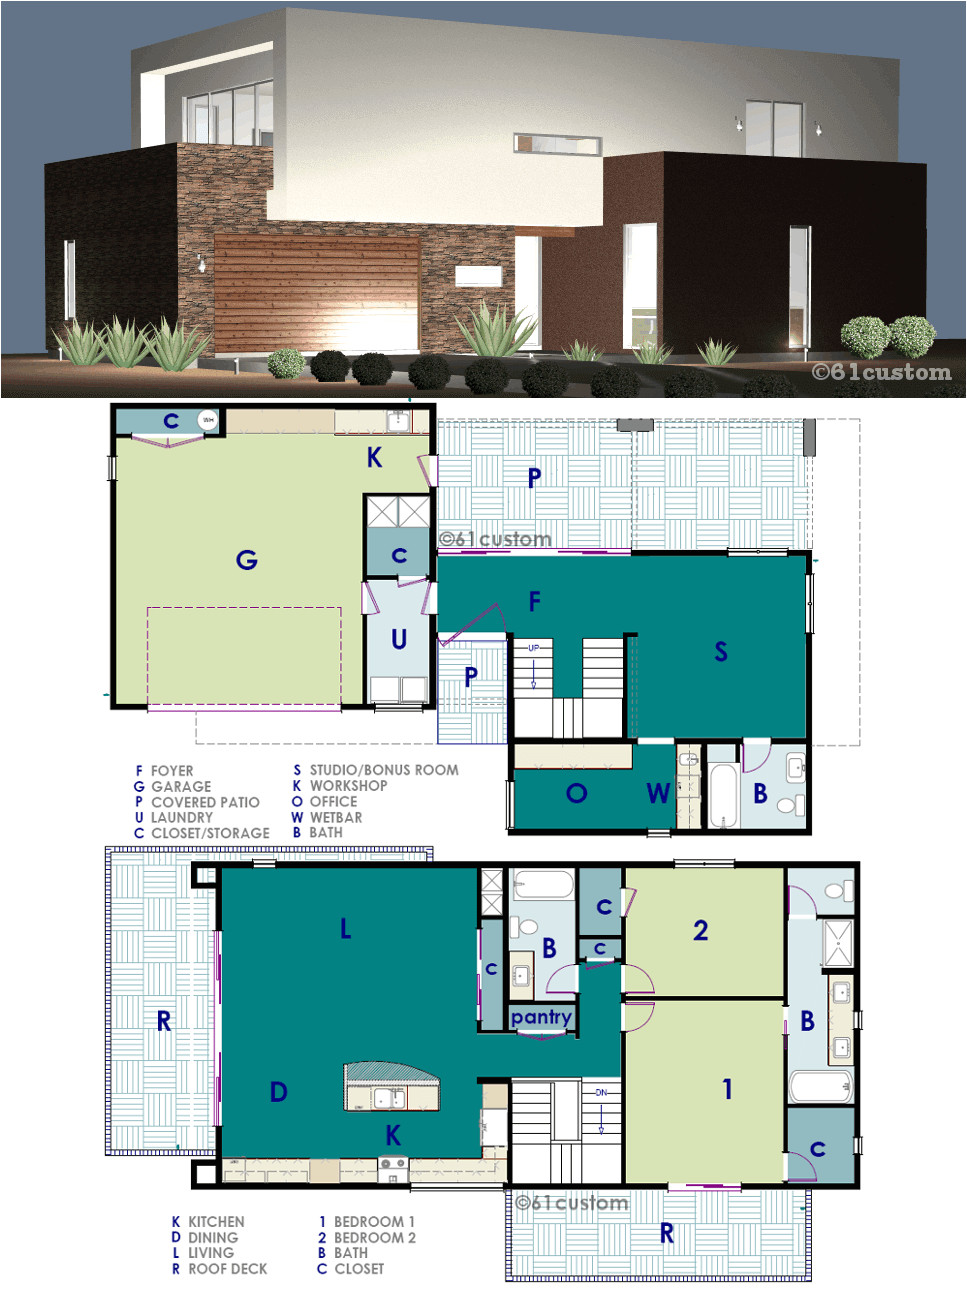 graceful modern house floor plans 27 with swimming pool of 2 storey minimalist plan